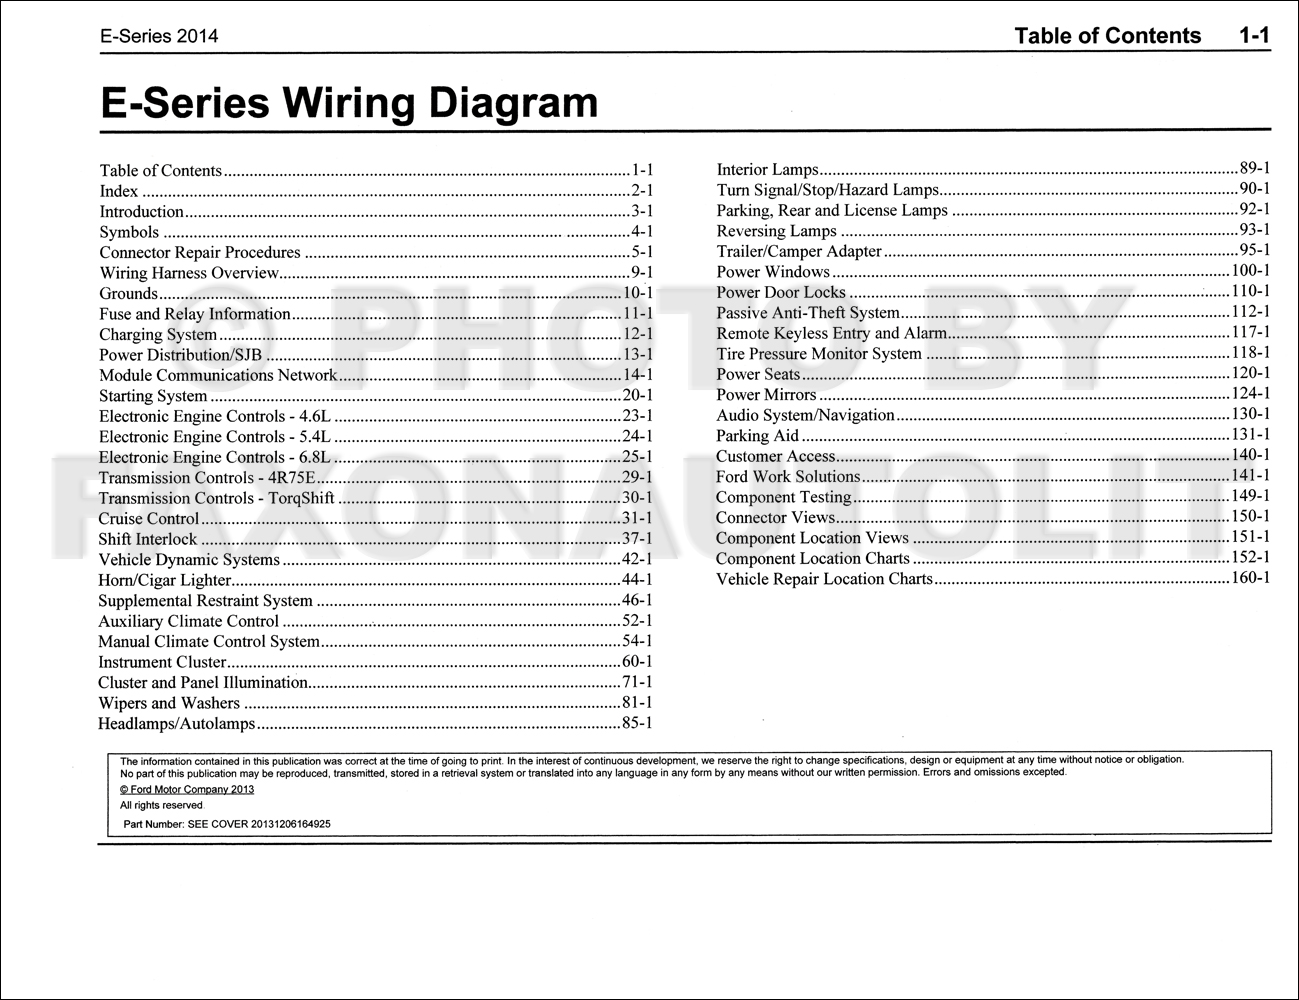 1990 Ford E 450 Fuse Diagram Electronic Wiring Diagrams 98 Club Wagon 2014 Econoline Manual Original Van E150 E250 F 150 Heritage